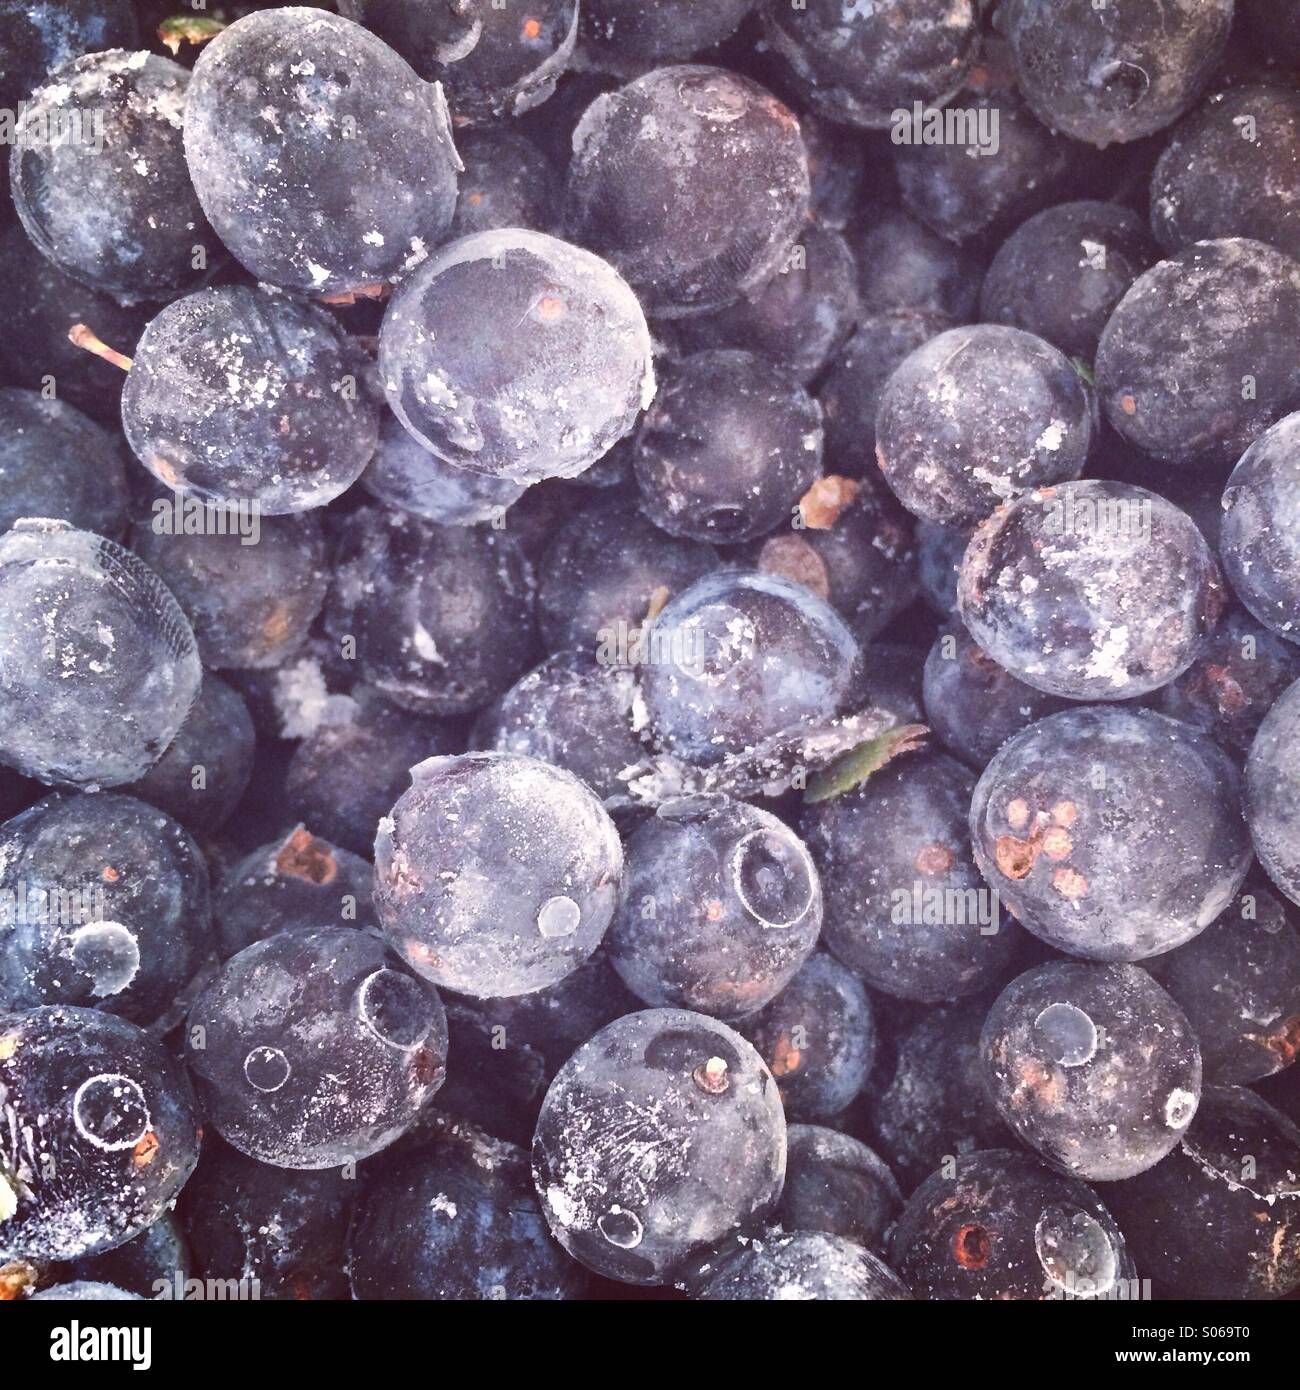 Frozen Sloes ready for Gin Stock Foto